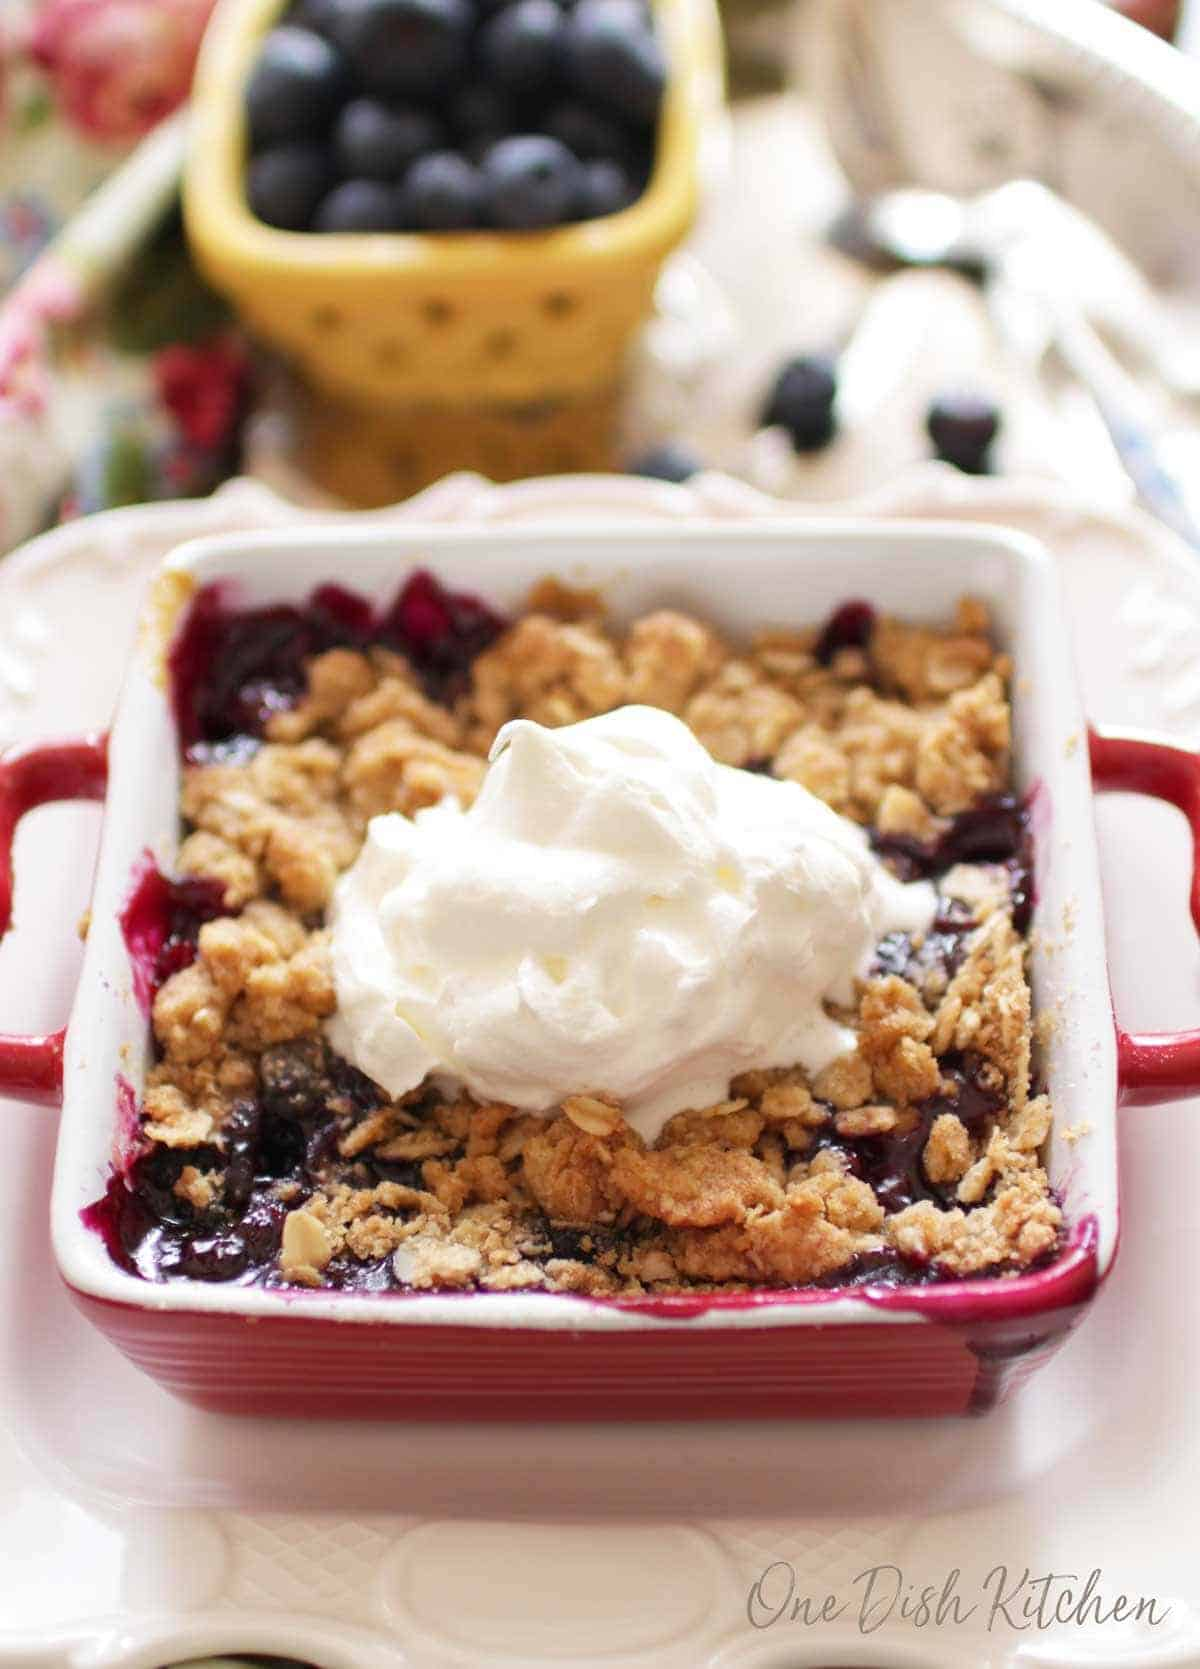 Mini blueberry crumble in a small red baking dish topped with whipped cream next to a small bowl of blueberries all on a metal tray